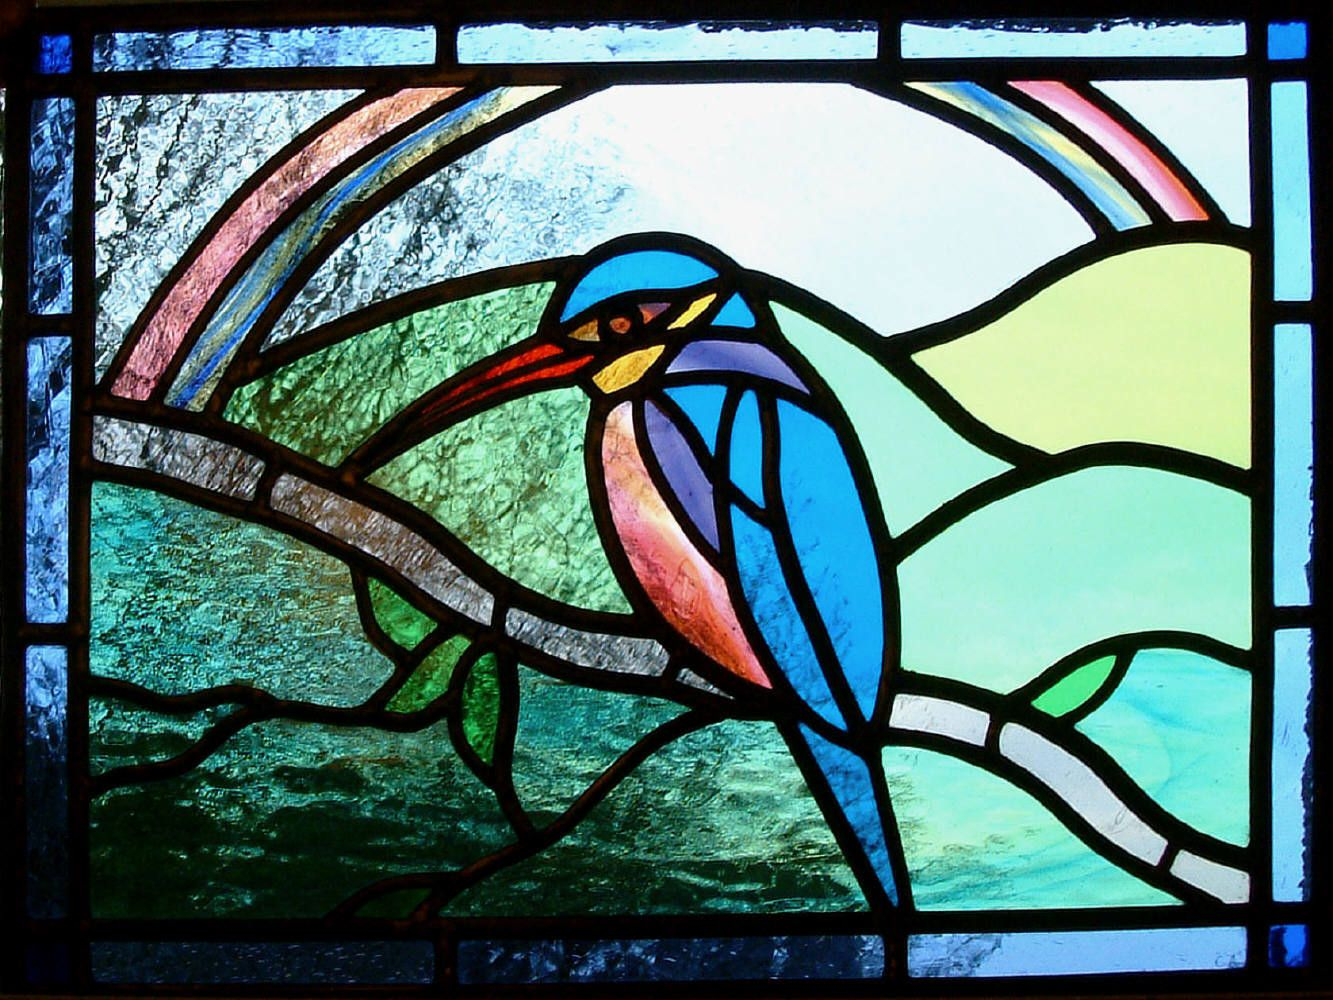 Glass window design - Find This Pin And More On Stained Glass Windows